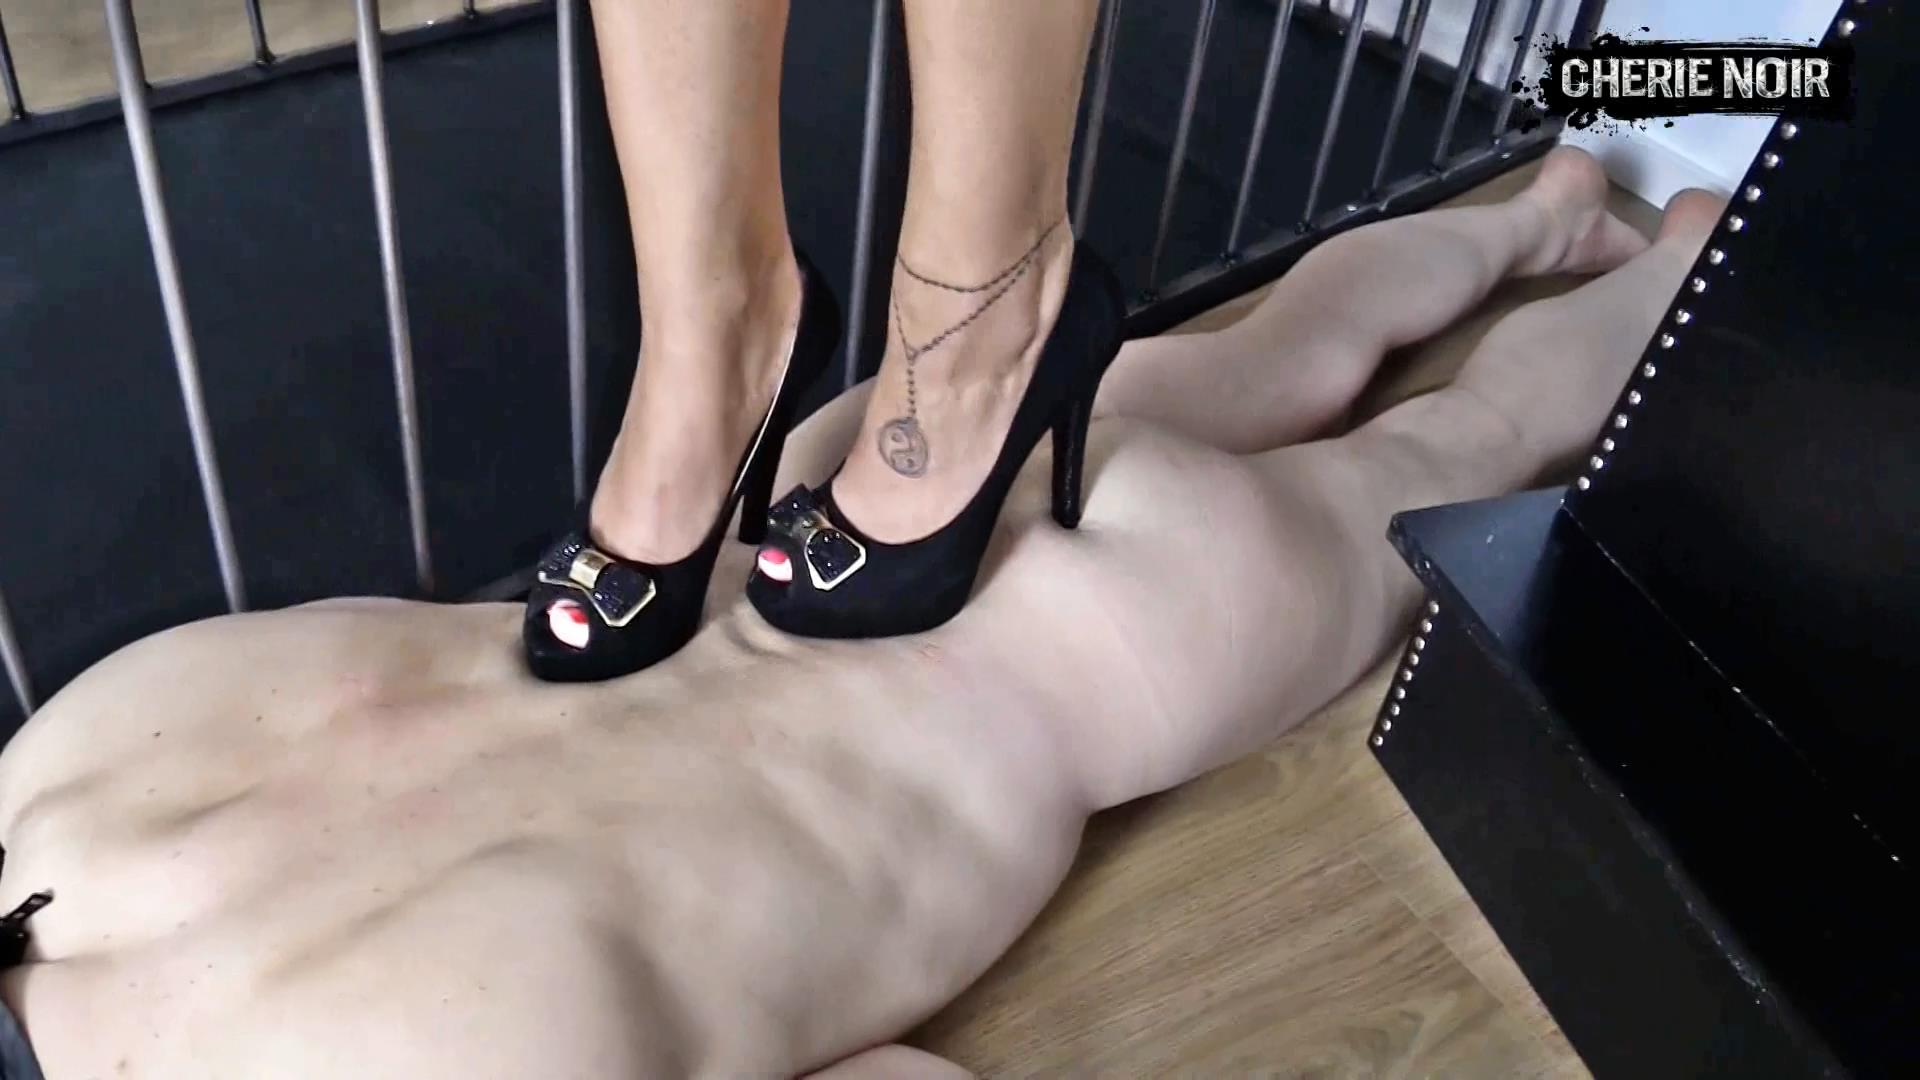 Lady Cherie Noir In Scene: LV Trampling. Luxury Shoes Of A Luxury Mistress - CHERIE-NOIR - FULL HD/1080p/MP4